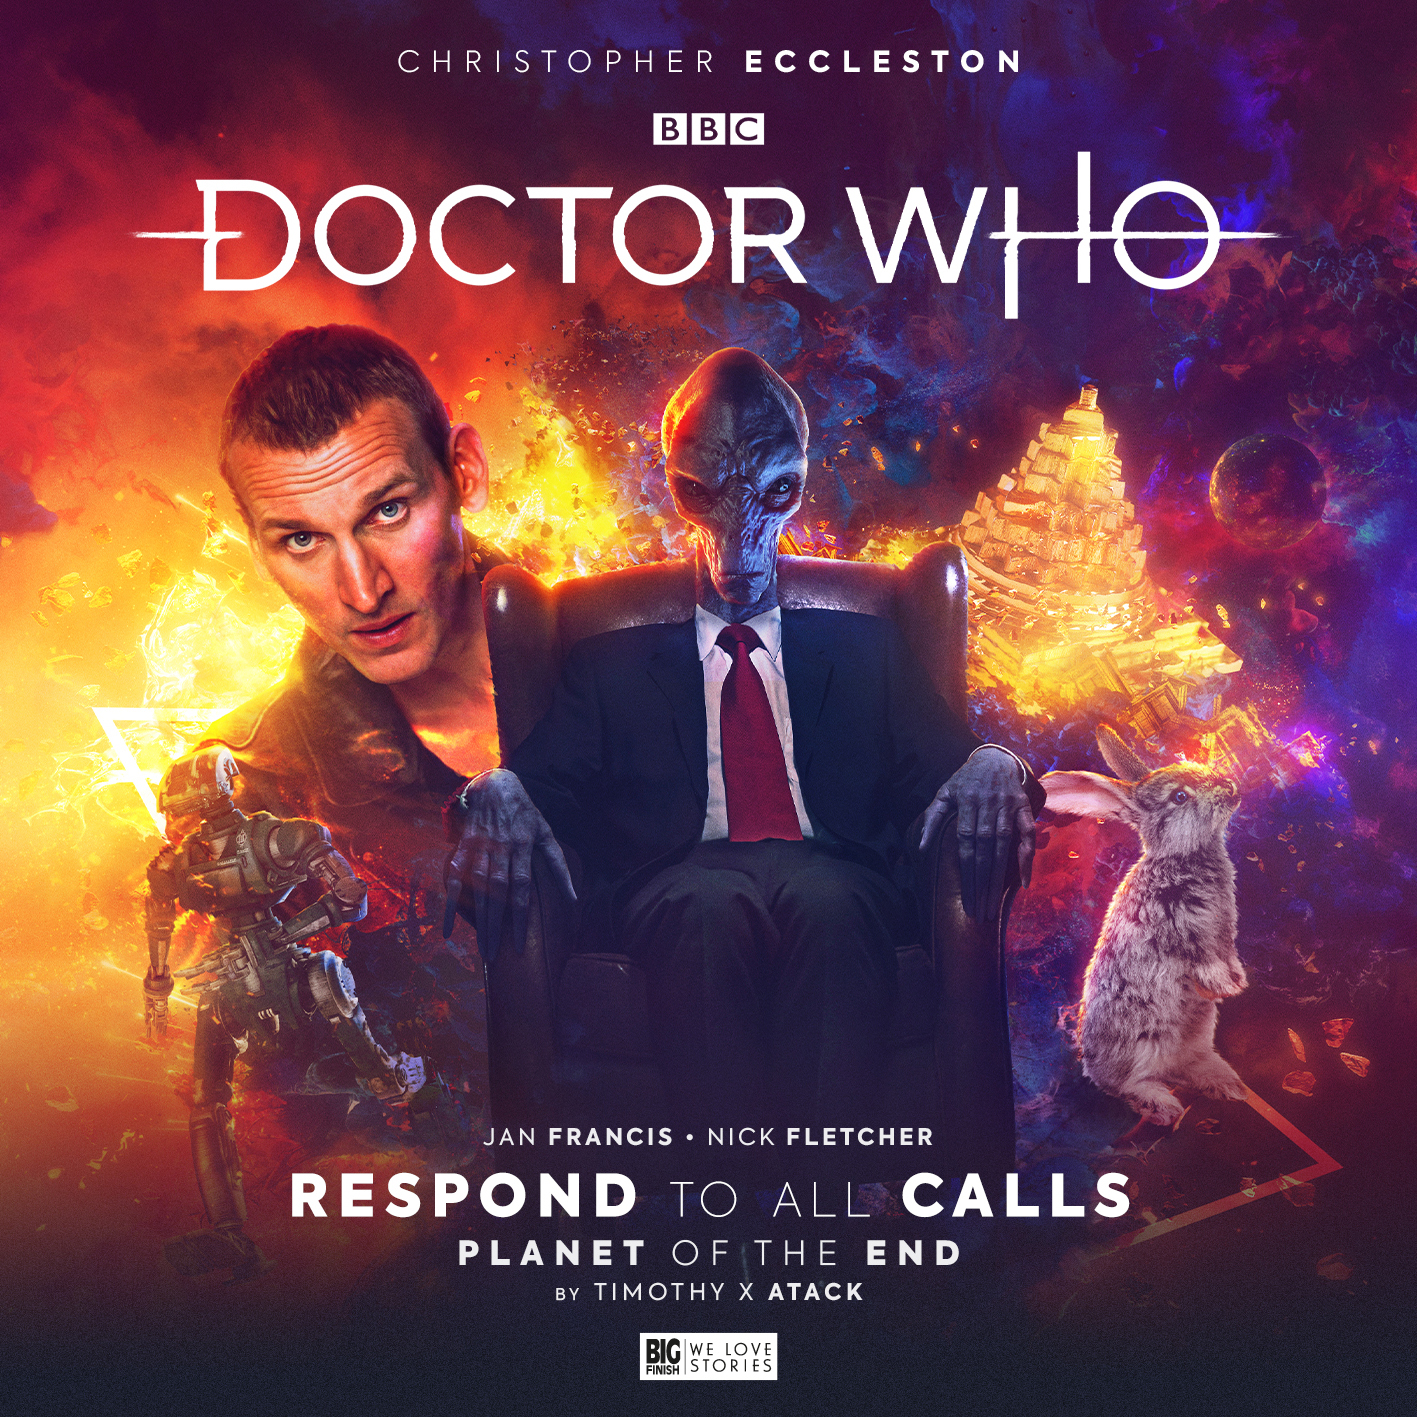 Cover art for Doctor Who Big Finish Respond to all Calls story featuring Christopher Eccleston